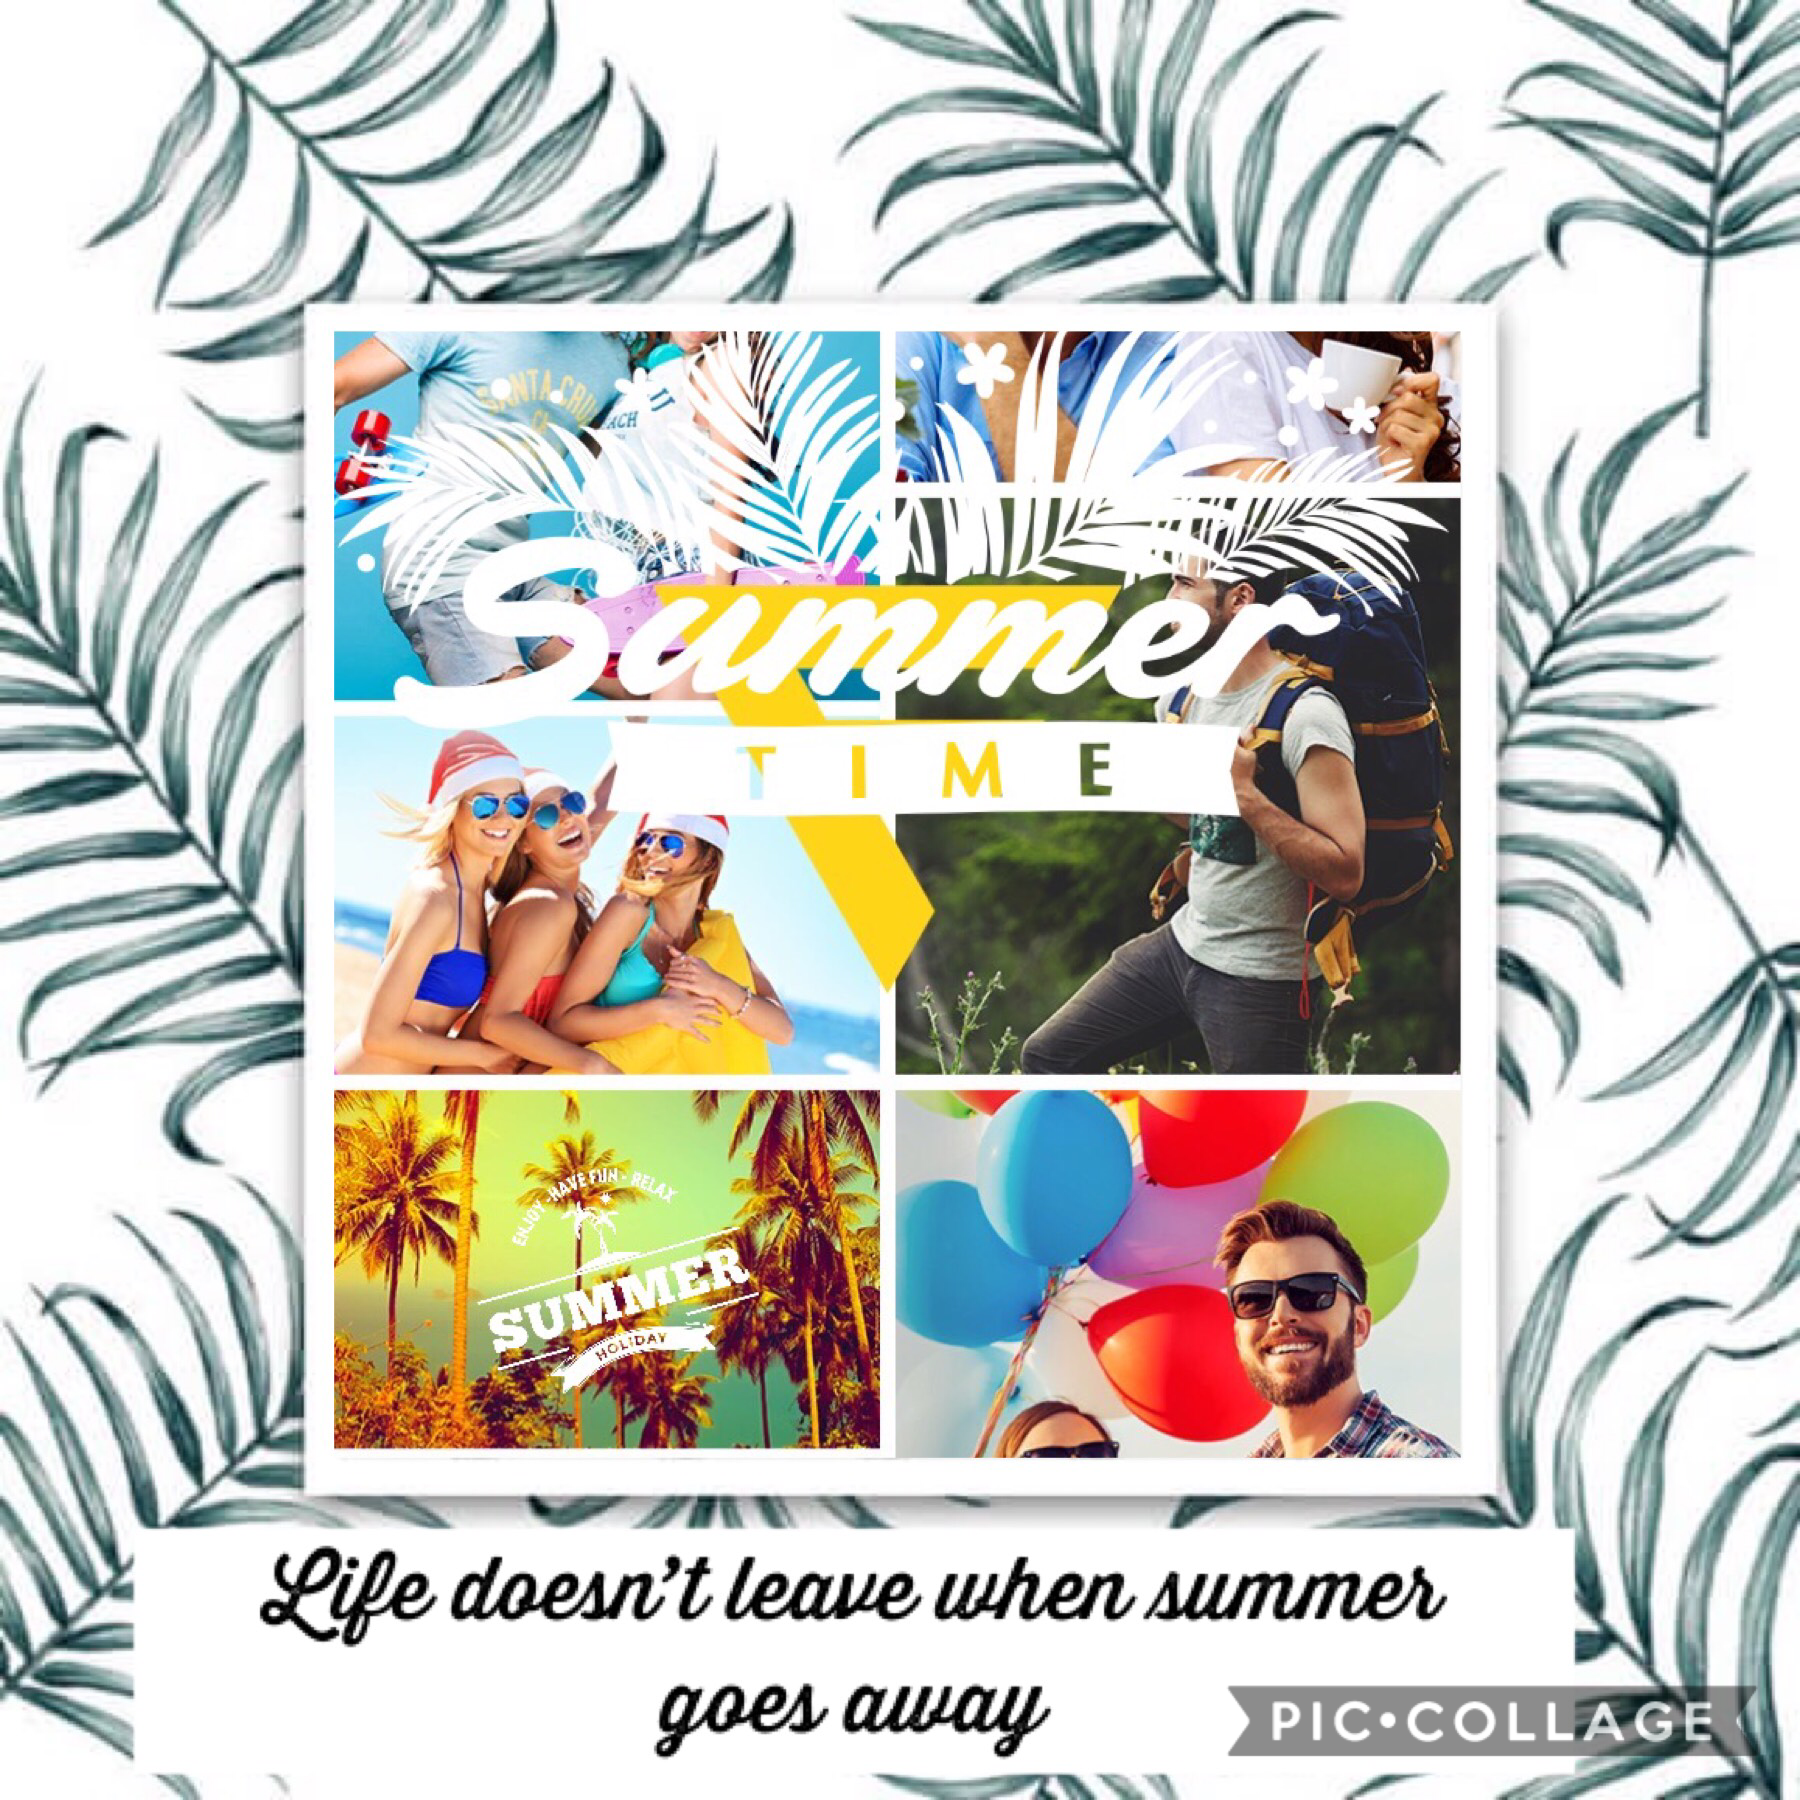 🐚Tap🐚  🏄♀️I know that it's not summer anymore but we should still enjoy life🏄♀️ 🥶Say #Summer/Winter in the comments if you read this🥶